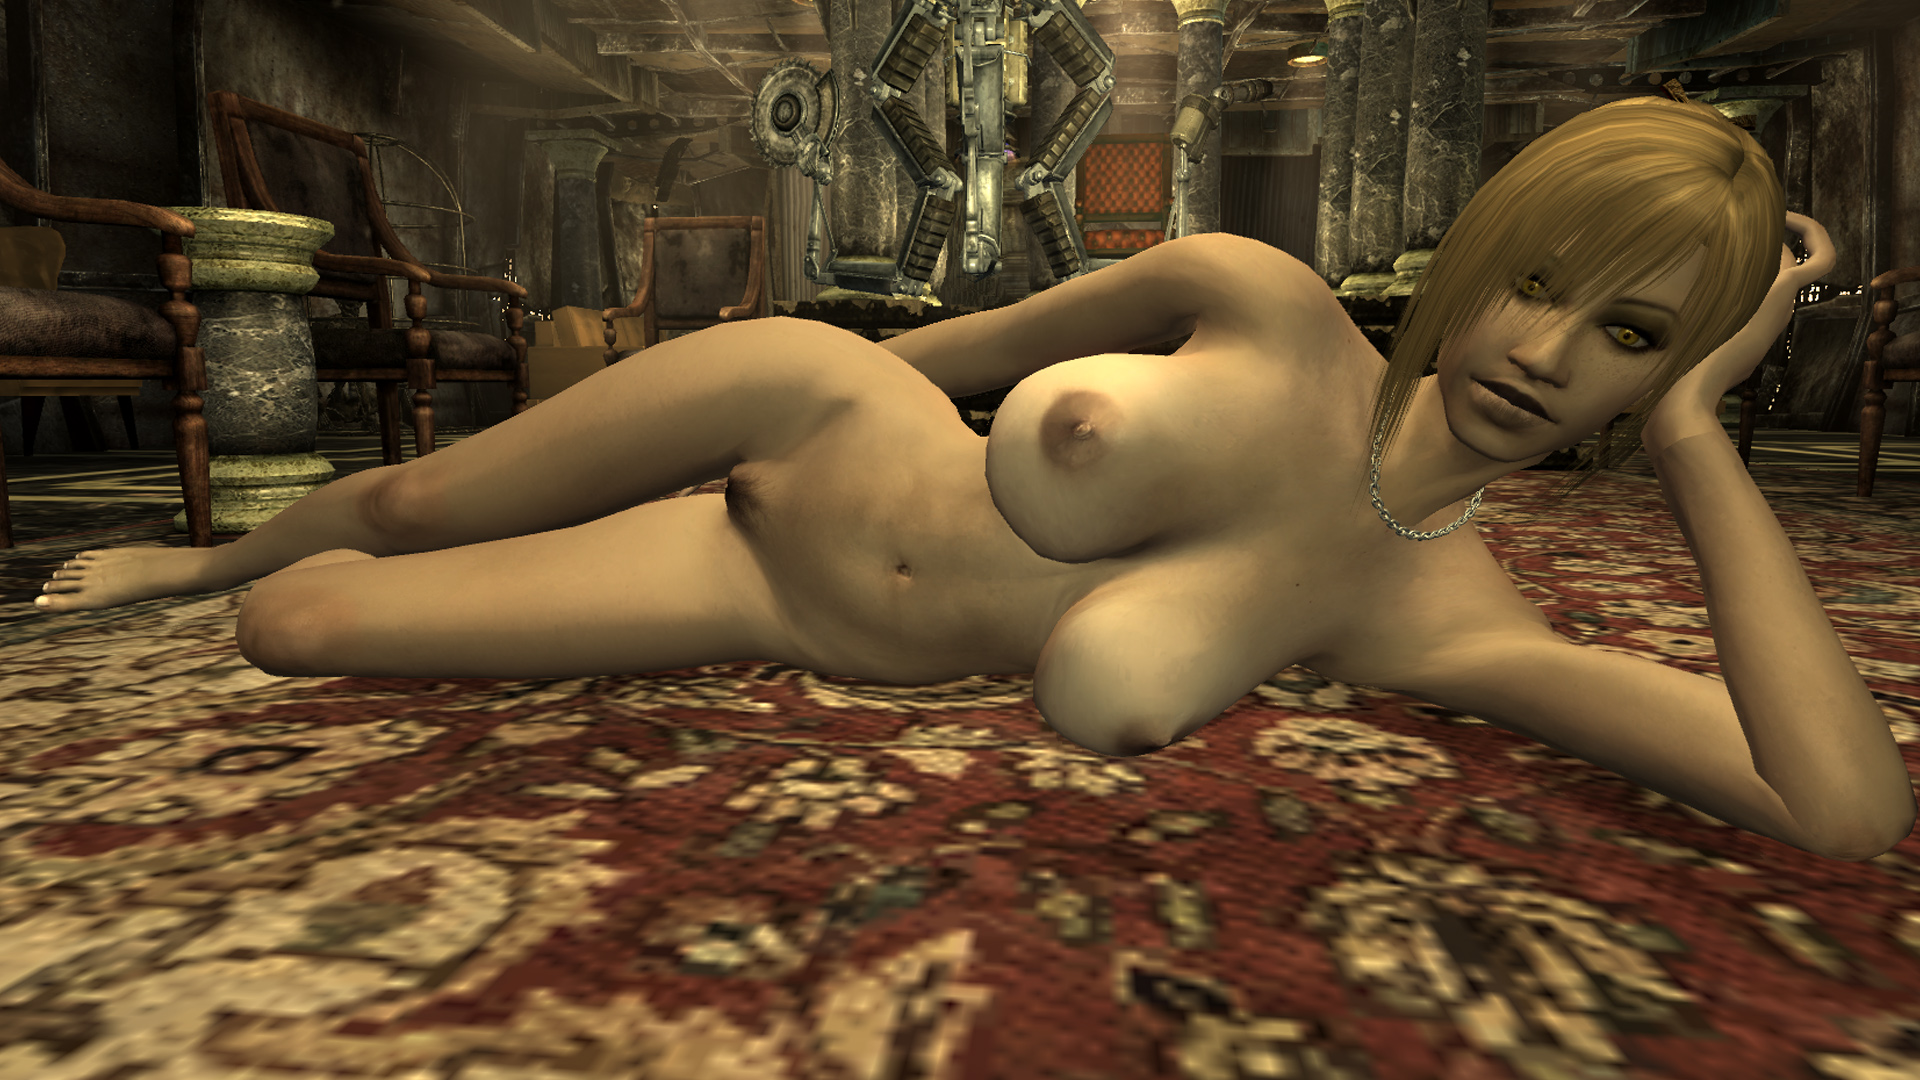 Fallout 3 nude girls mod uncensored nude videos